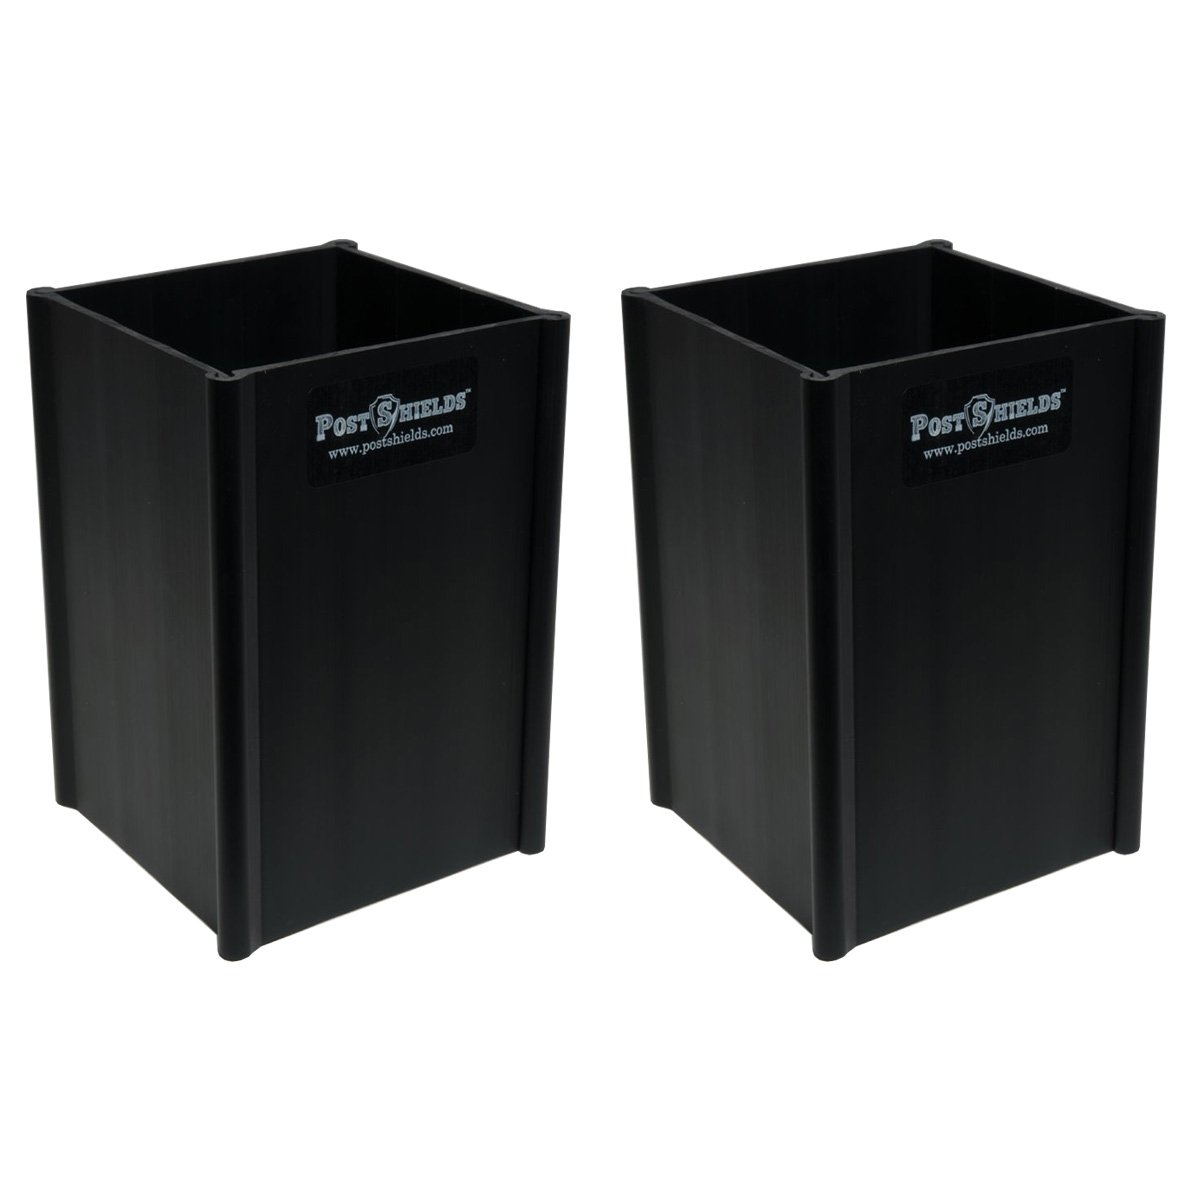 Pack of 2 - Post Shields 4'' x 4'' x 6'' (FITS 3.5'' x 3.5'' POSTS) - Black - Fence Post Protection from Grass Trimmers